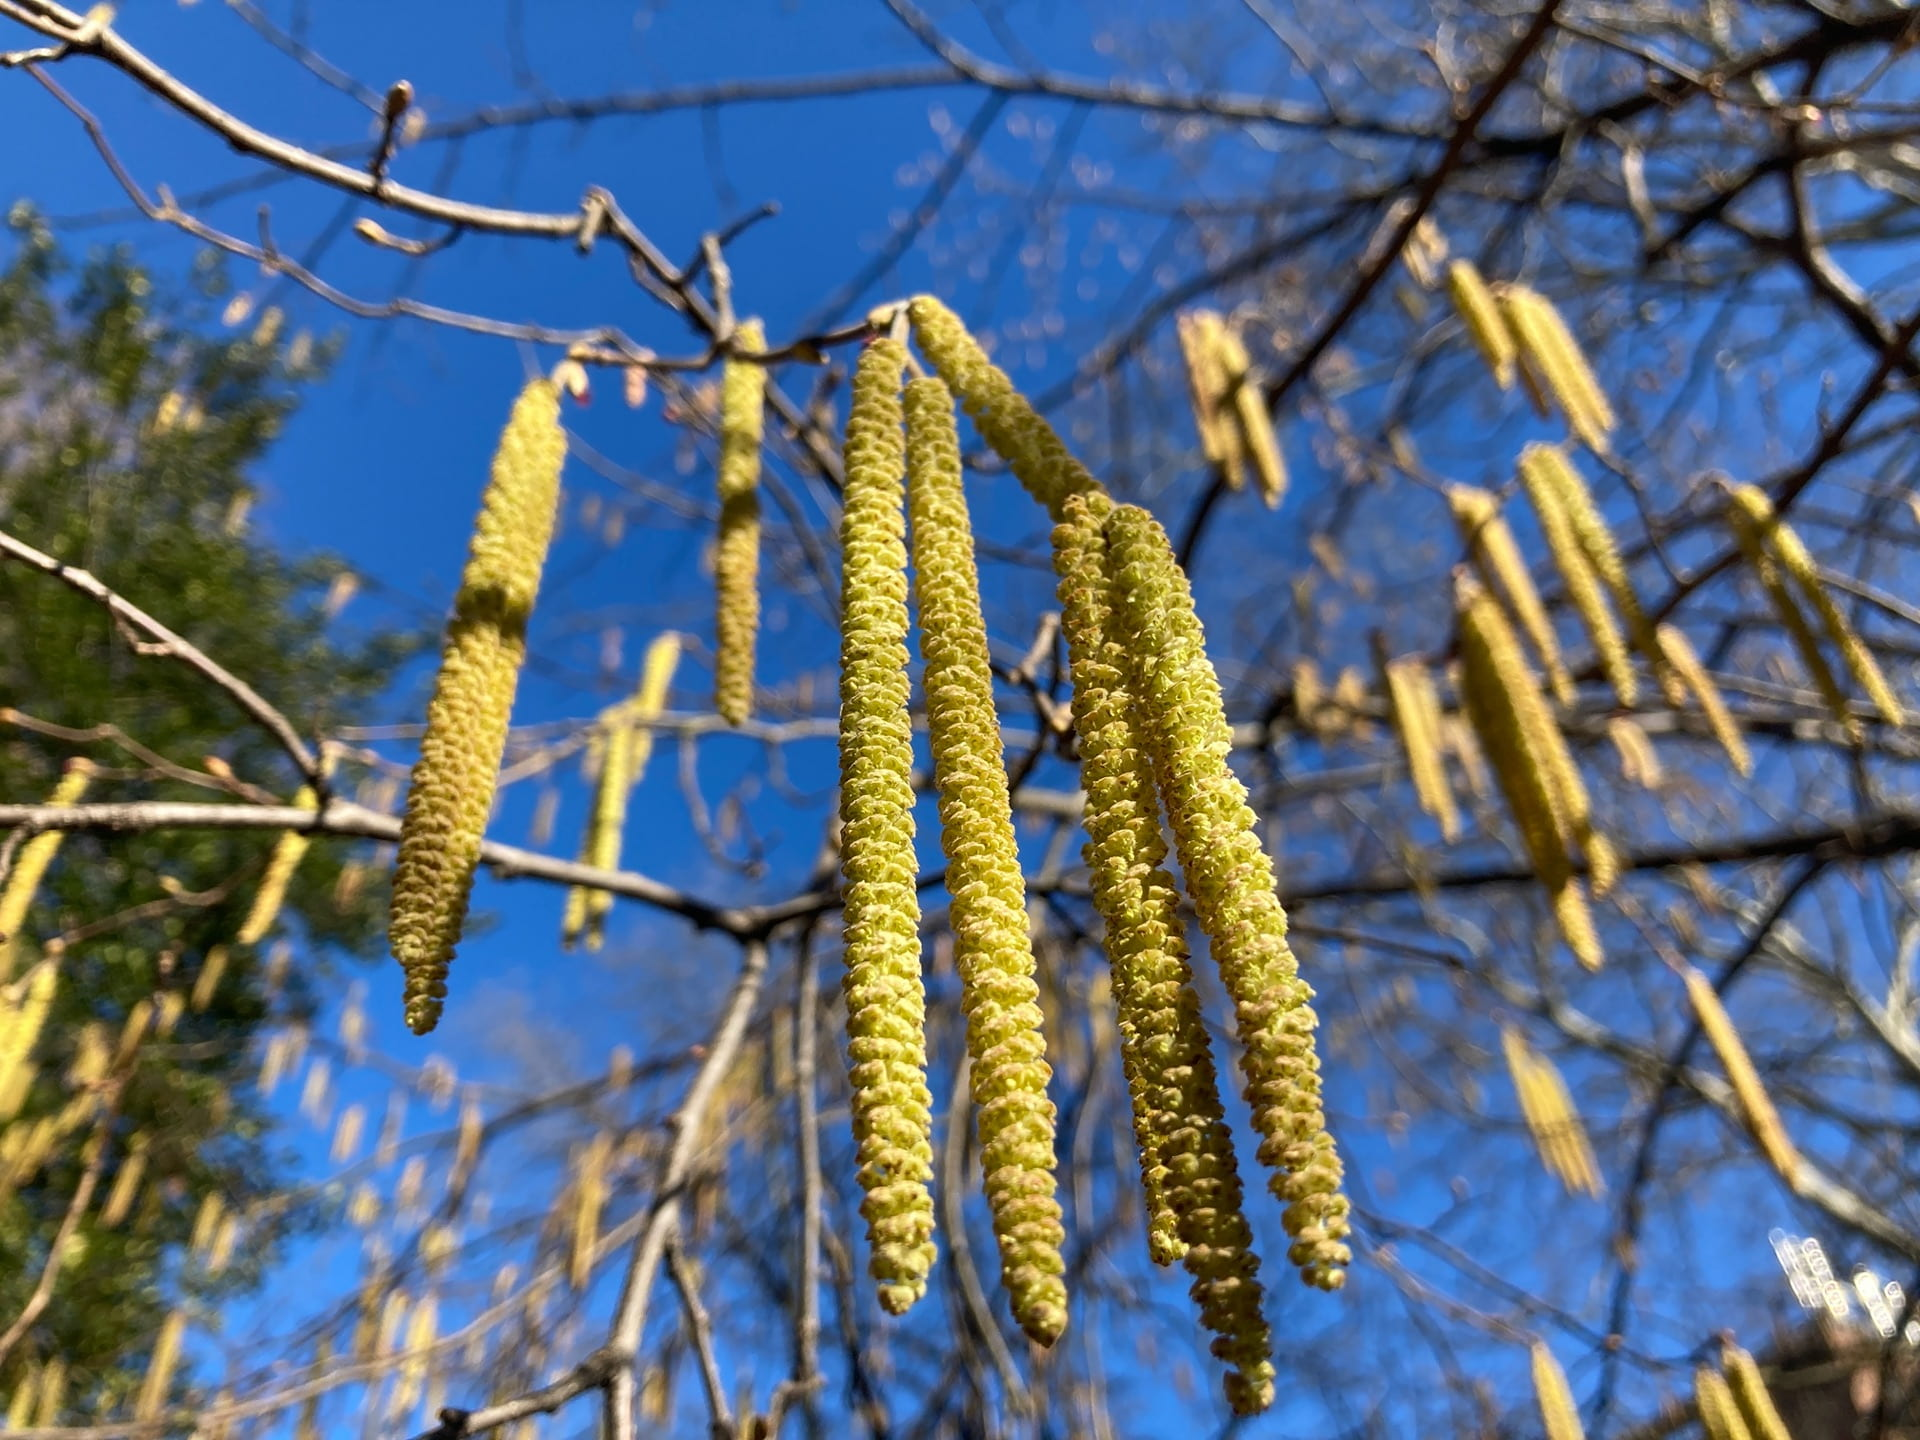 Corylus avellena sways gracefully in the wind.